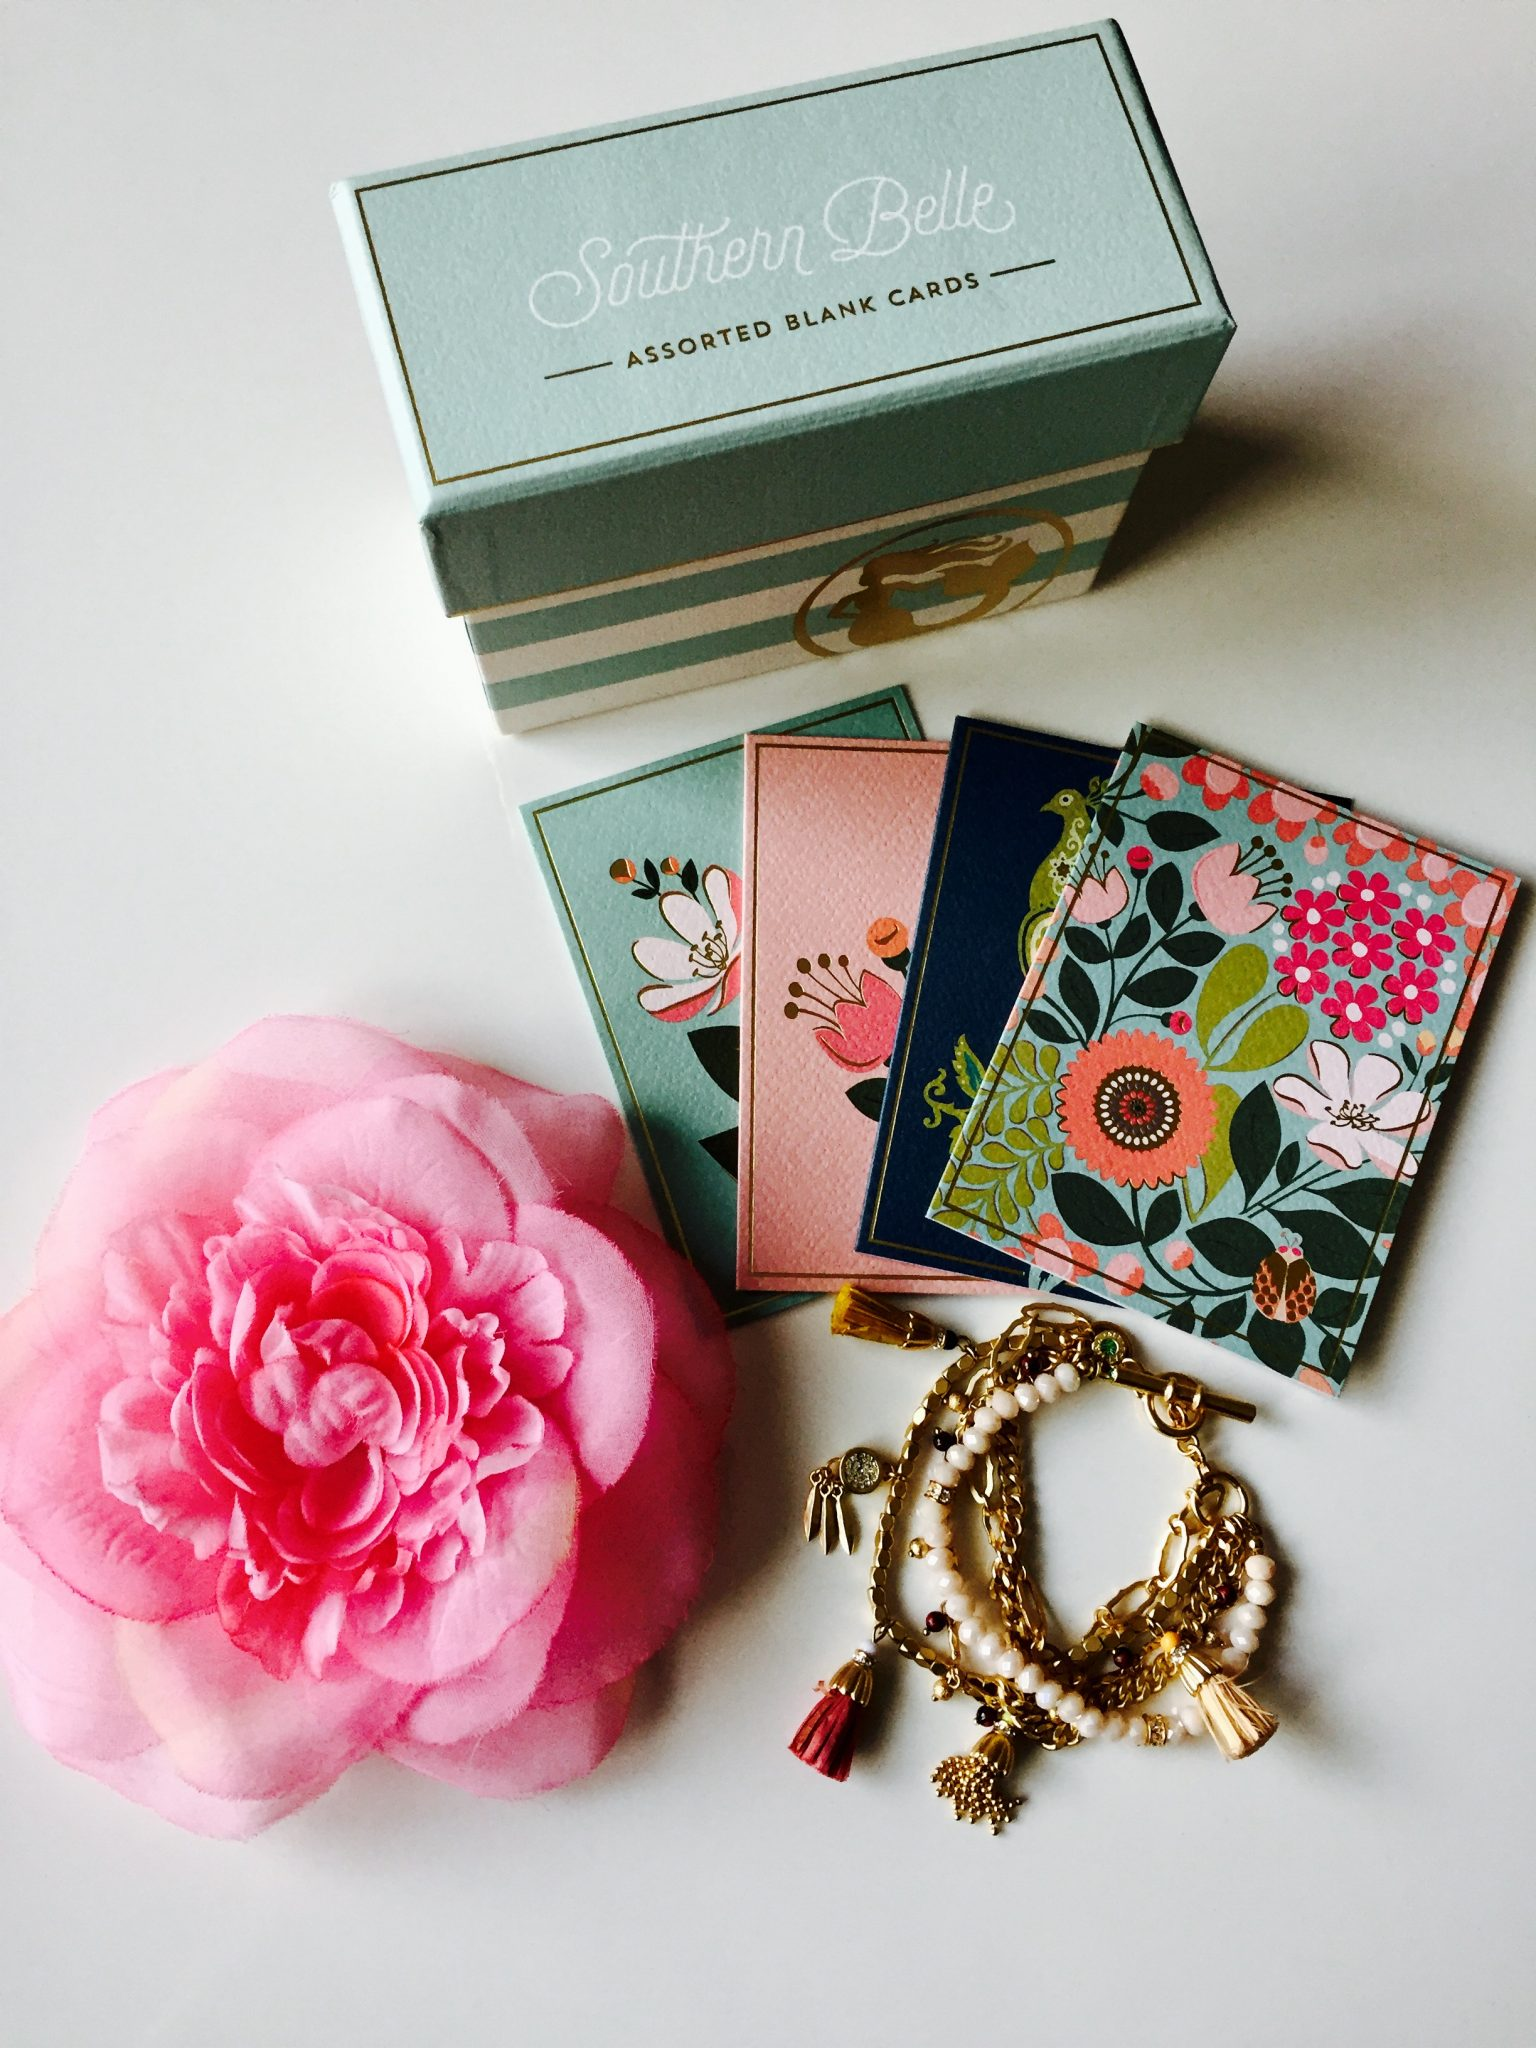 Gift Idea: Spartina 449 Assorted Blank Cards